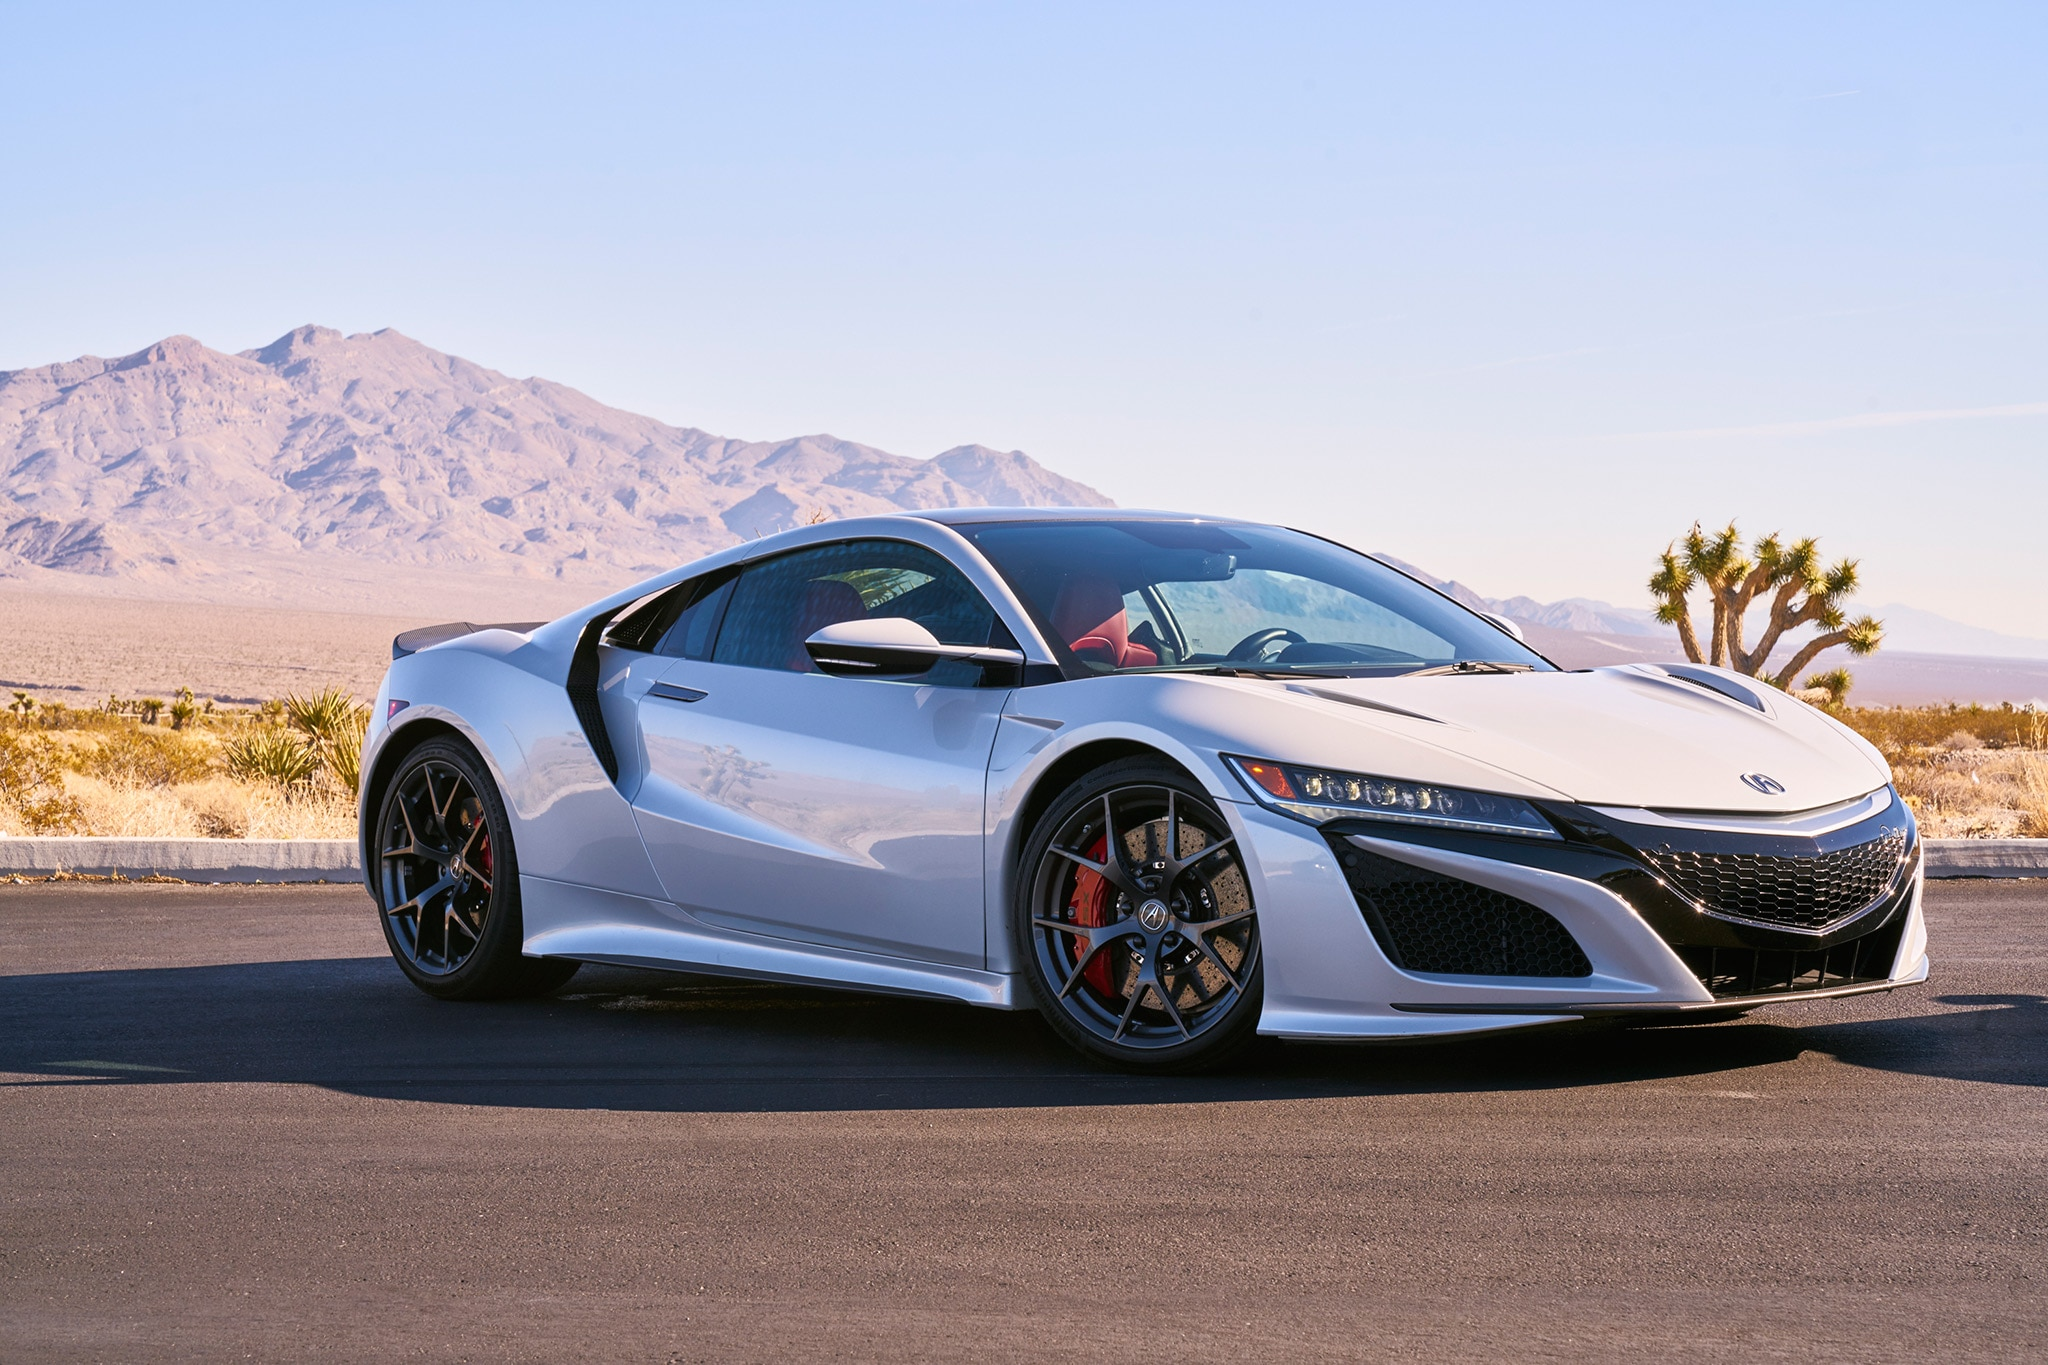 2017 Acura Nsx For Sale >> 2017 All-Stars Contender: Acura NSX | Automobile Magazine